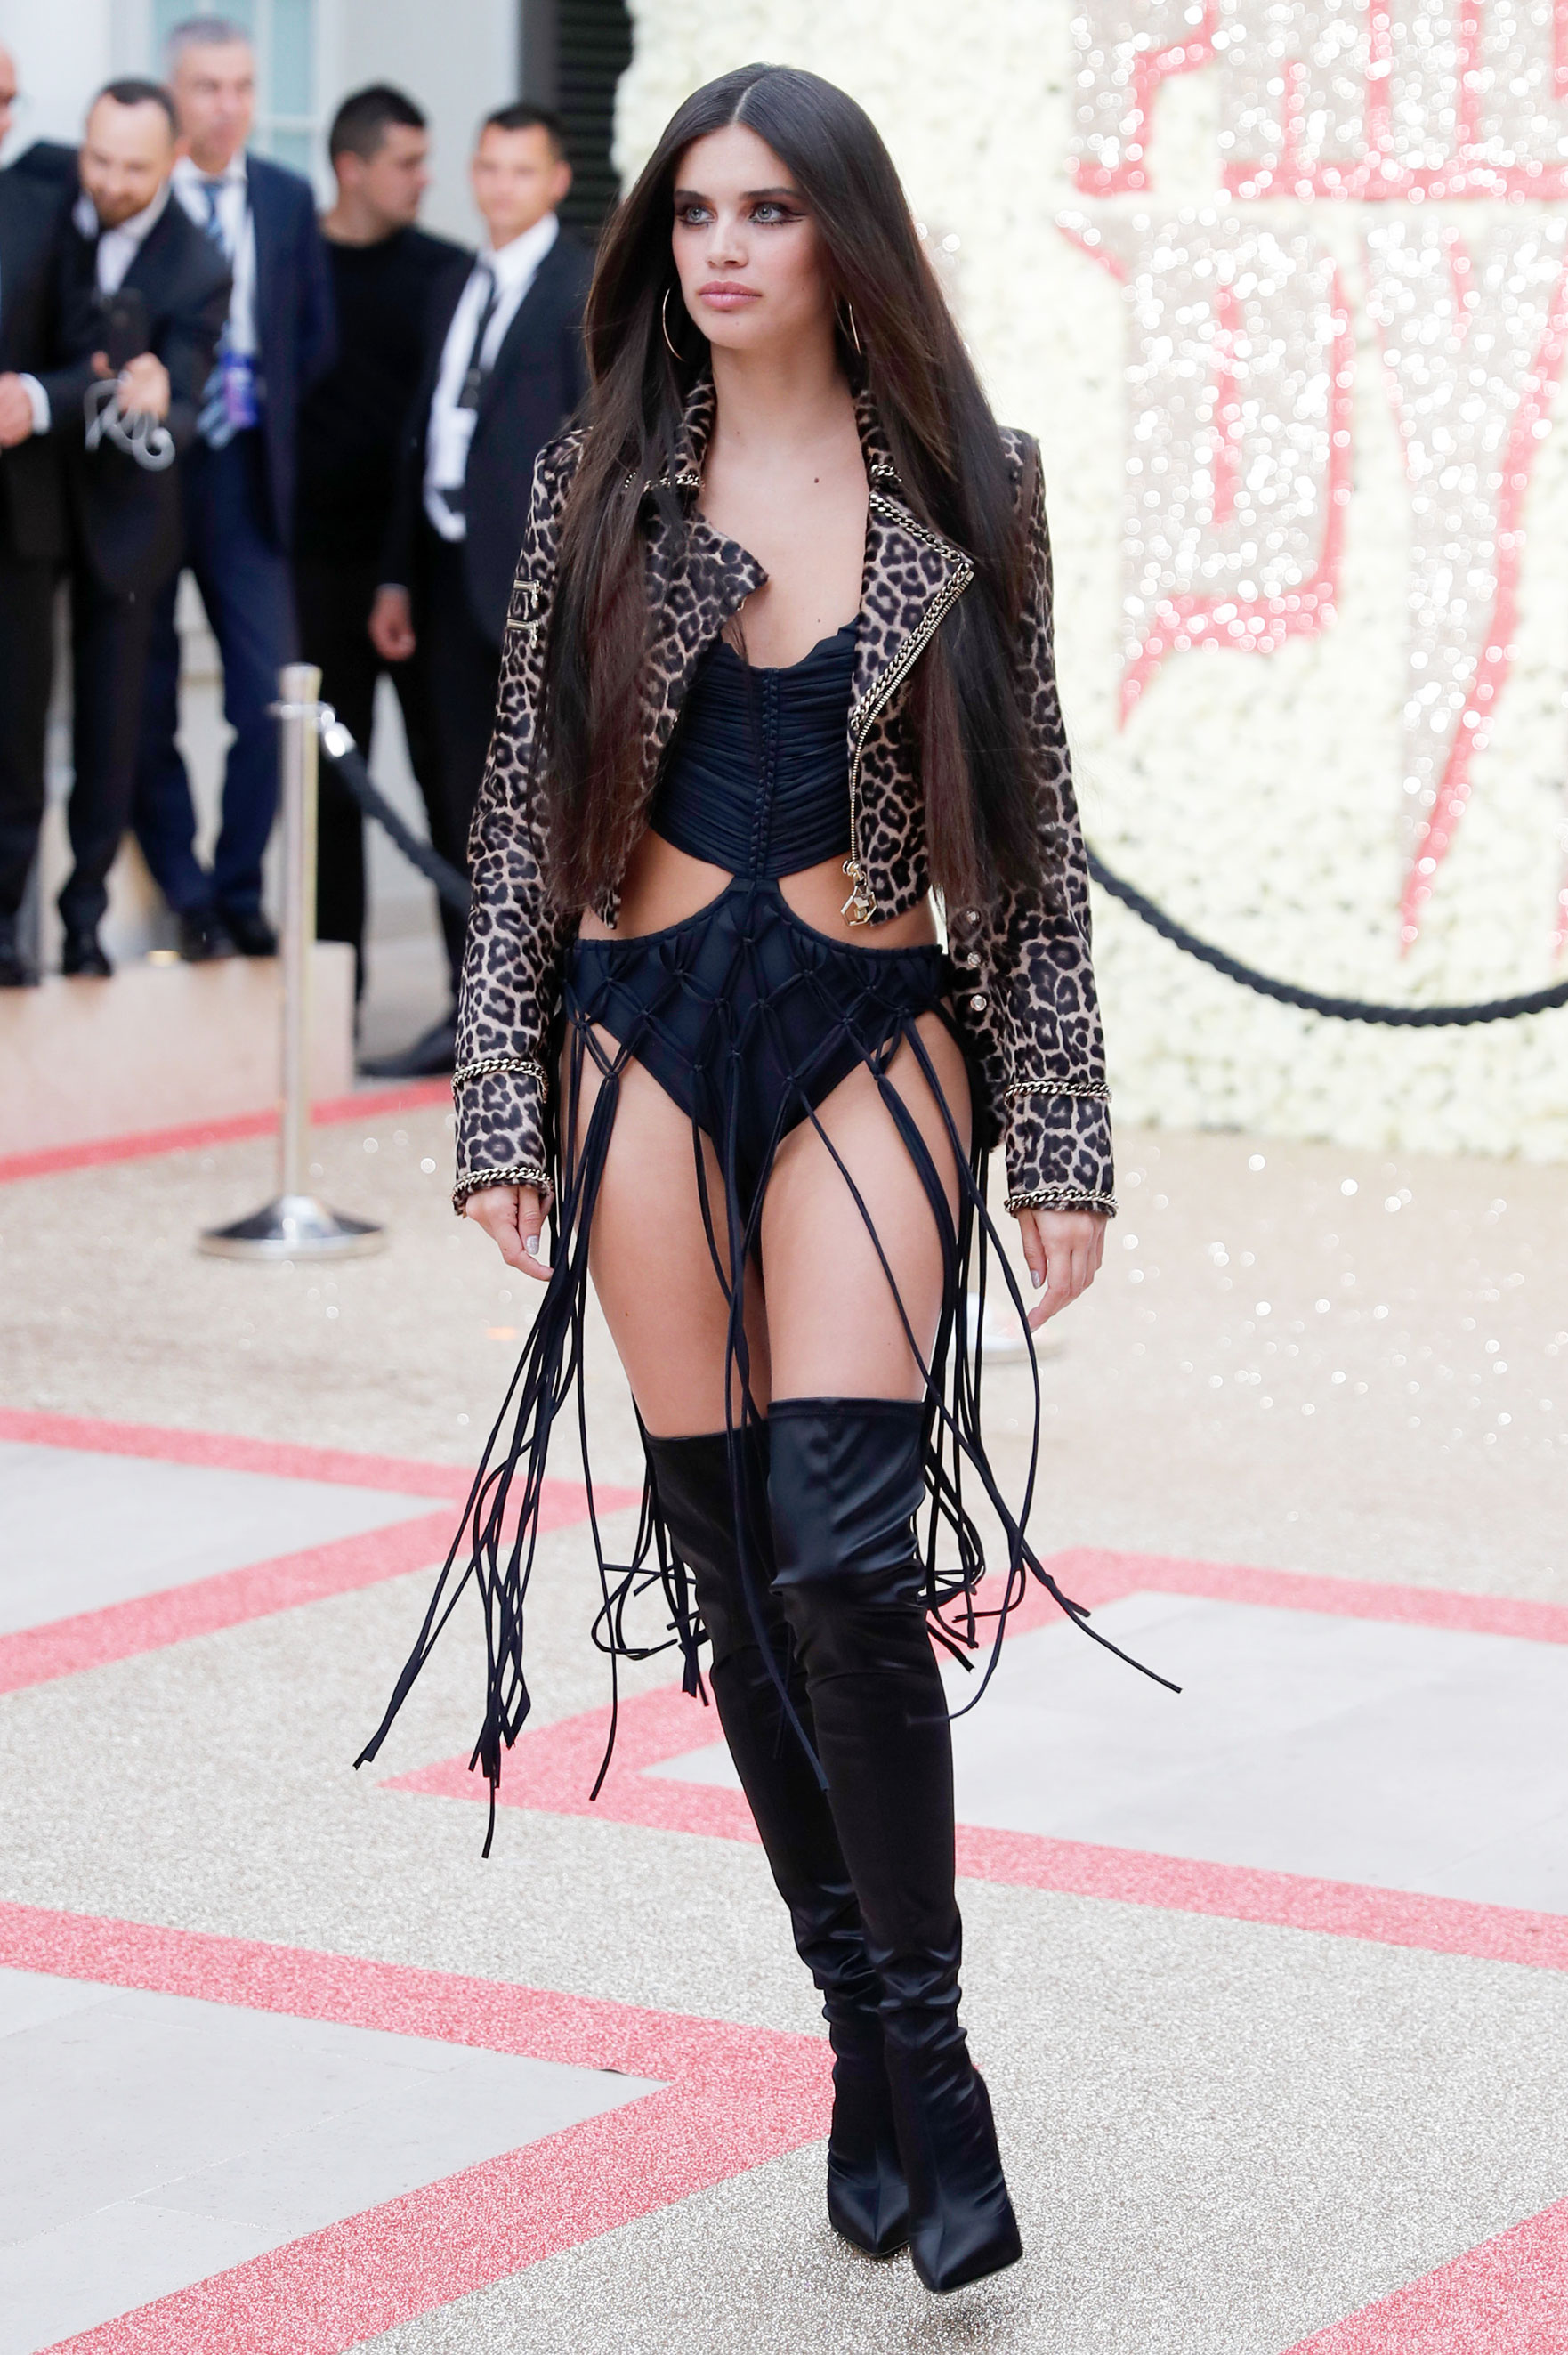 Sara Sampaio - We can thank the Victoria's Secret model, who rocked a tasseled bodysuit, leopard print bomber and thigh-high boots, for the summer beach inspiration at the Philipp Plein Resort 2019 fashion show on Wednesday, May 16.